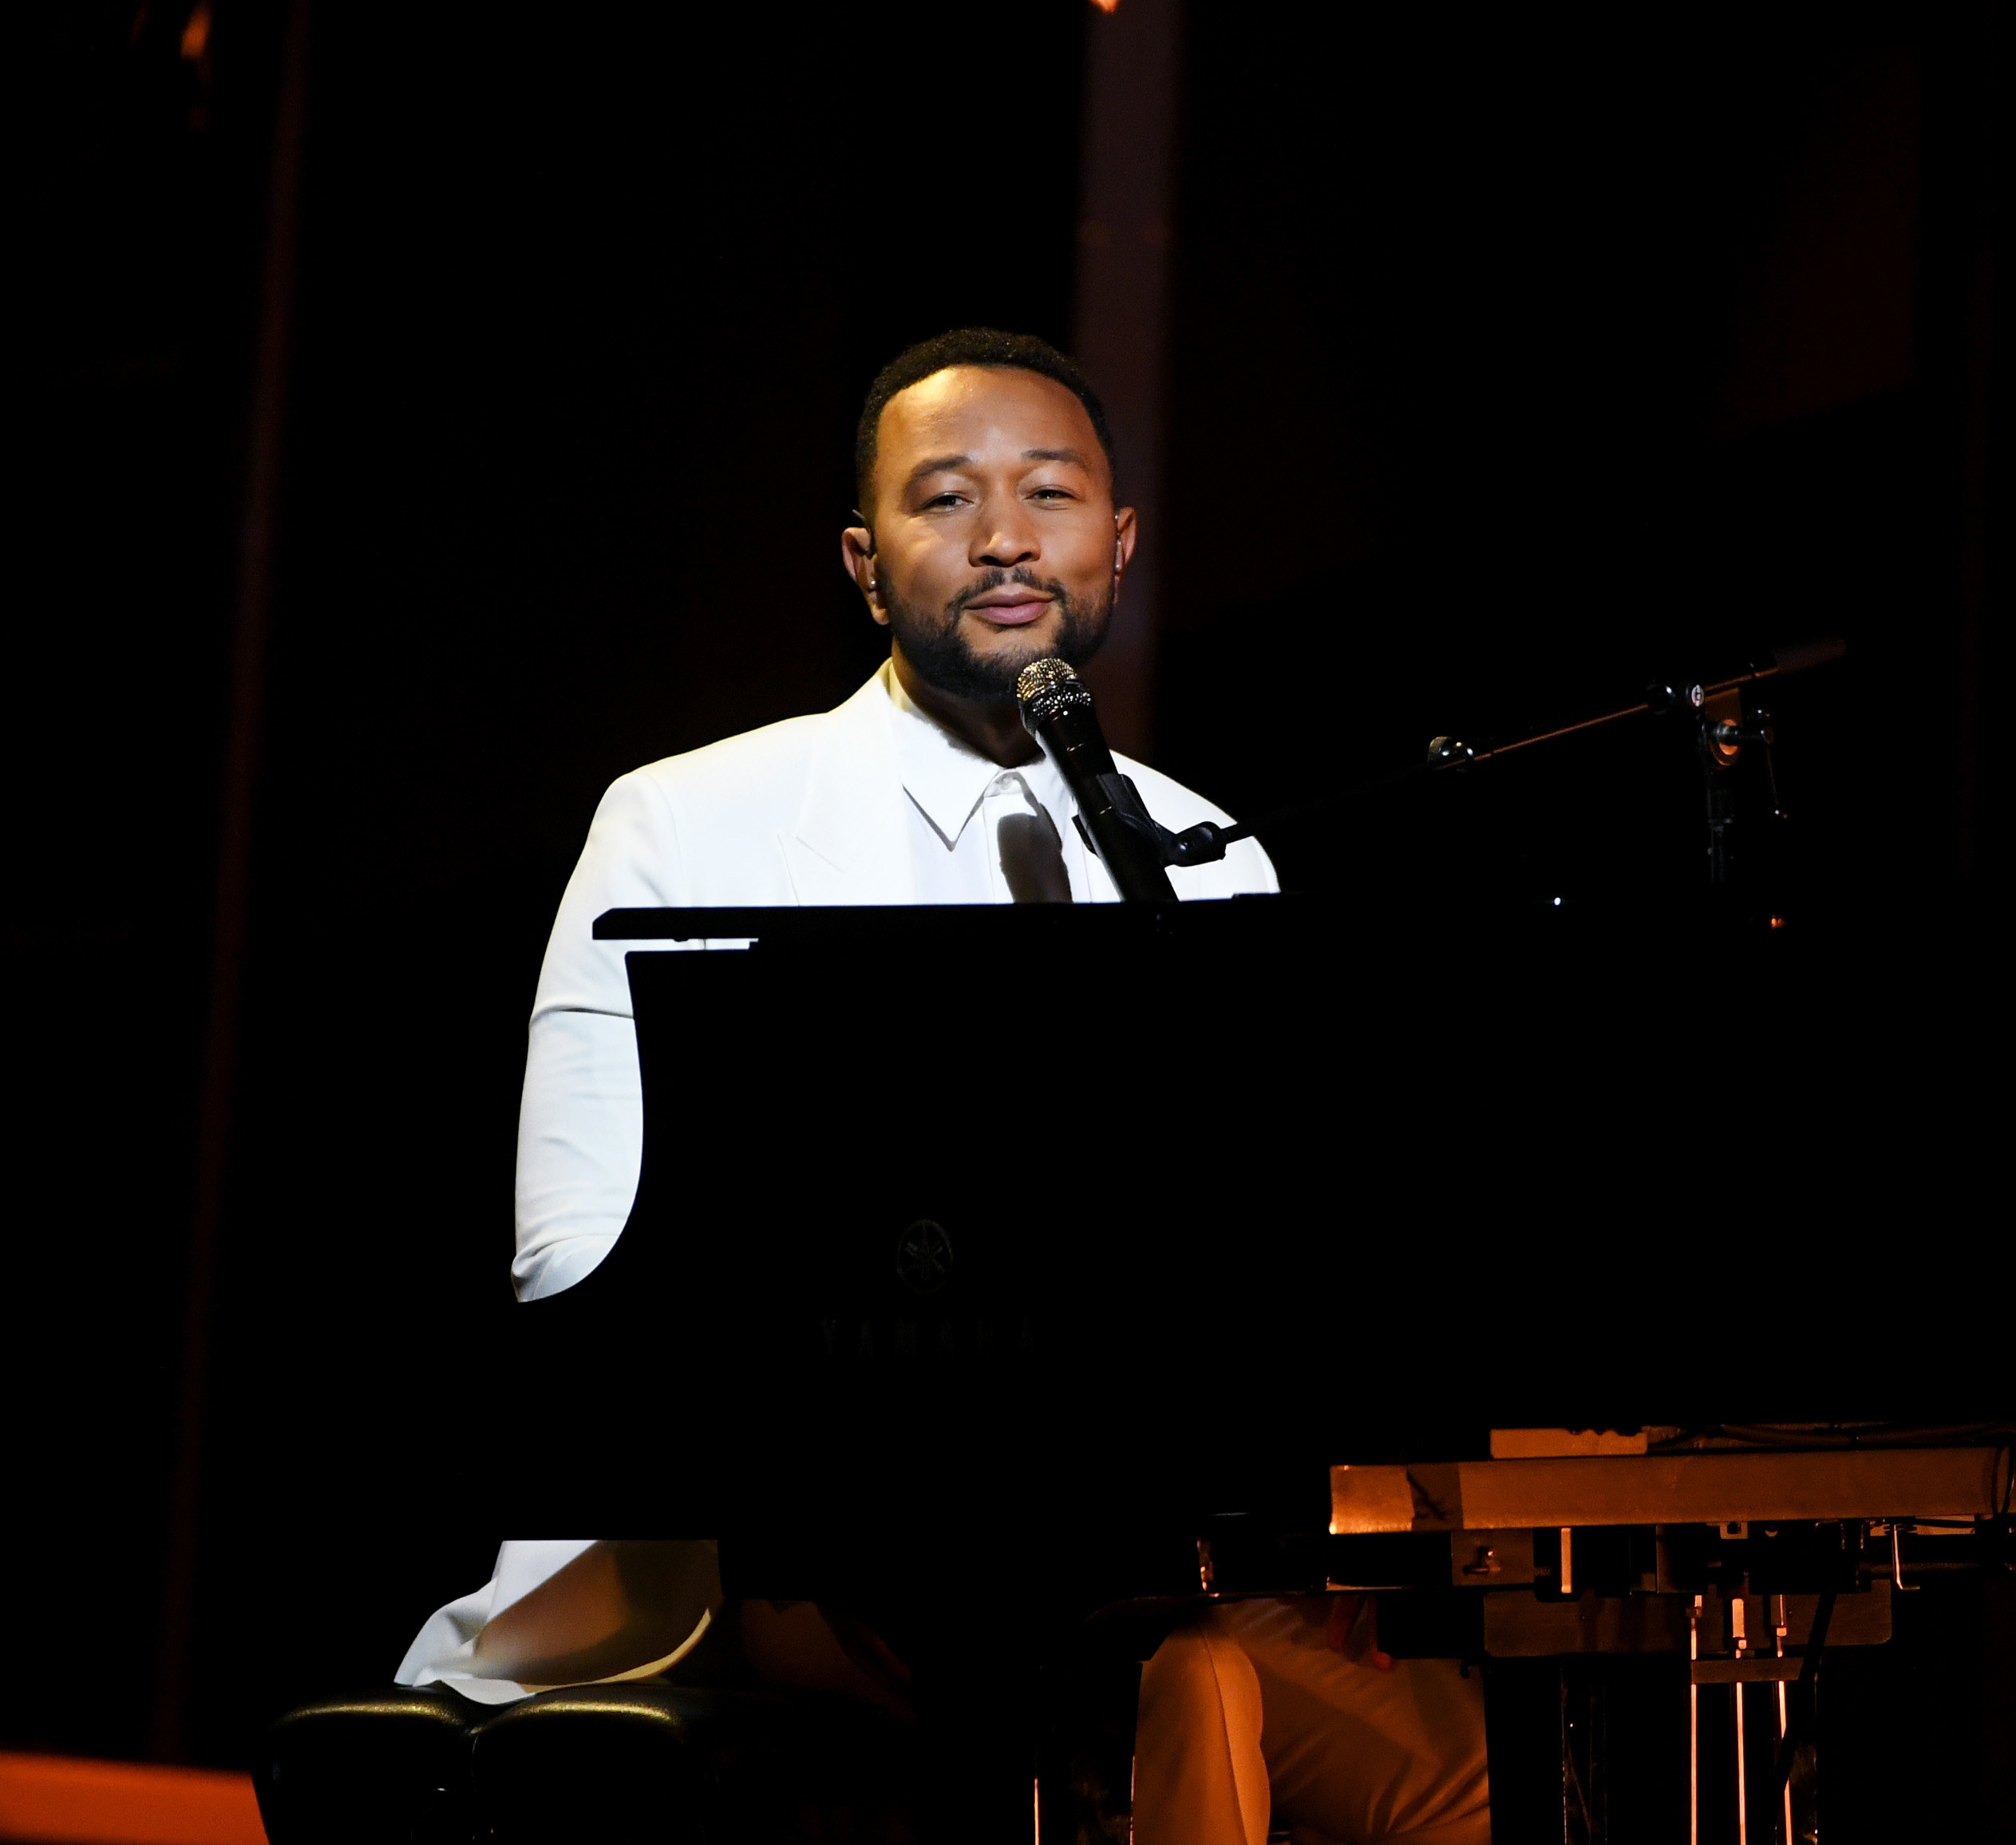 John Legend at the 2020 Billboard Music Awards